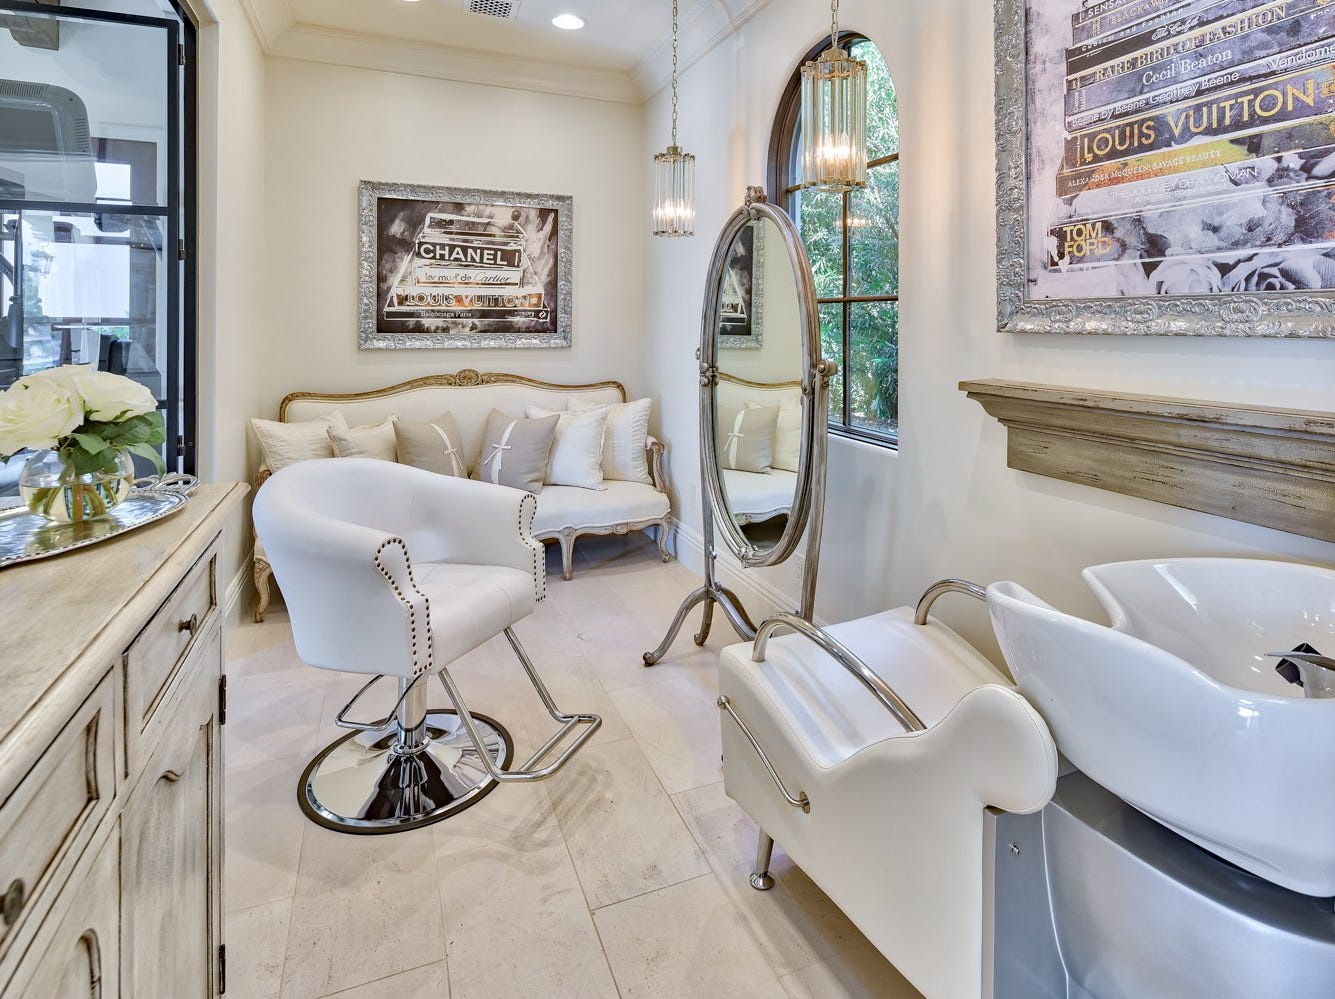 The master suite includes a private hair salon.